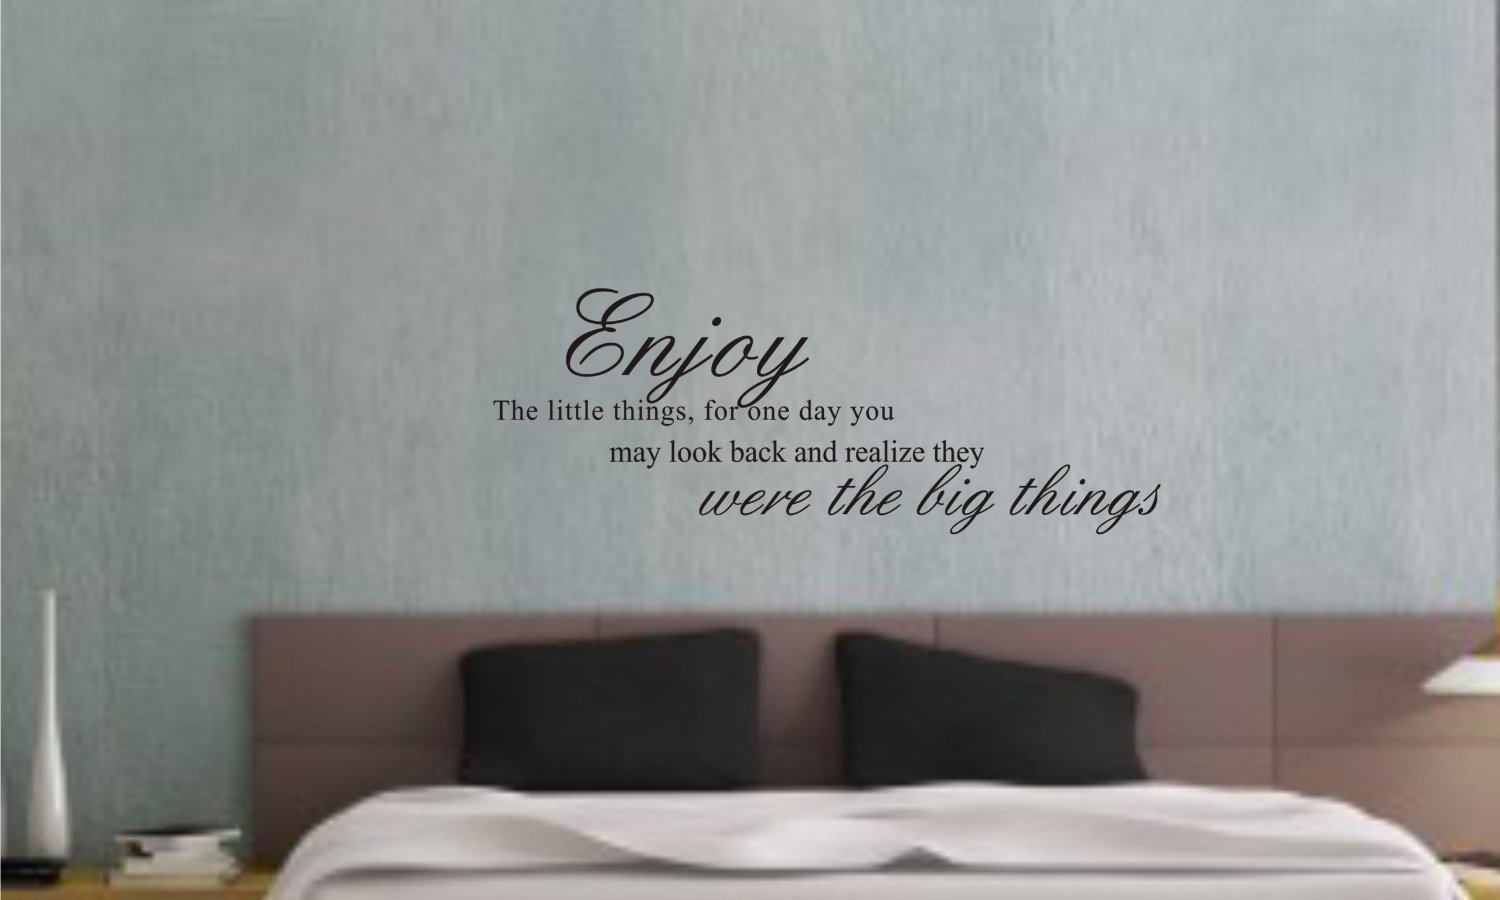 Enjoy the little things for one day you make look back and reali